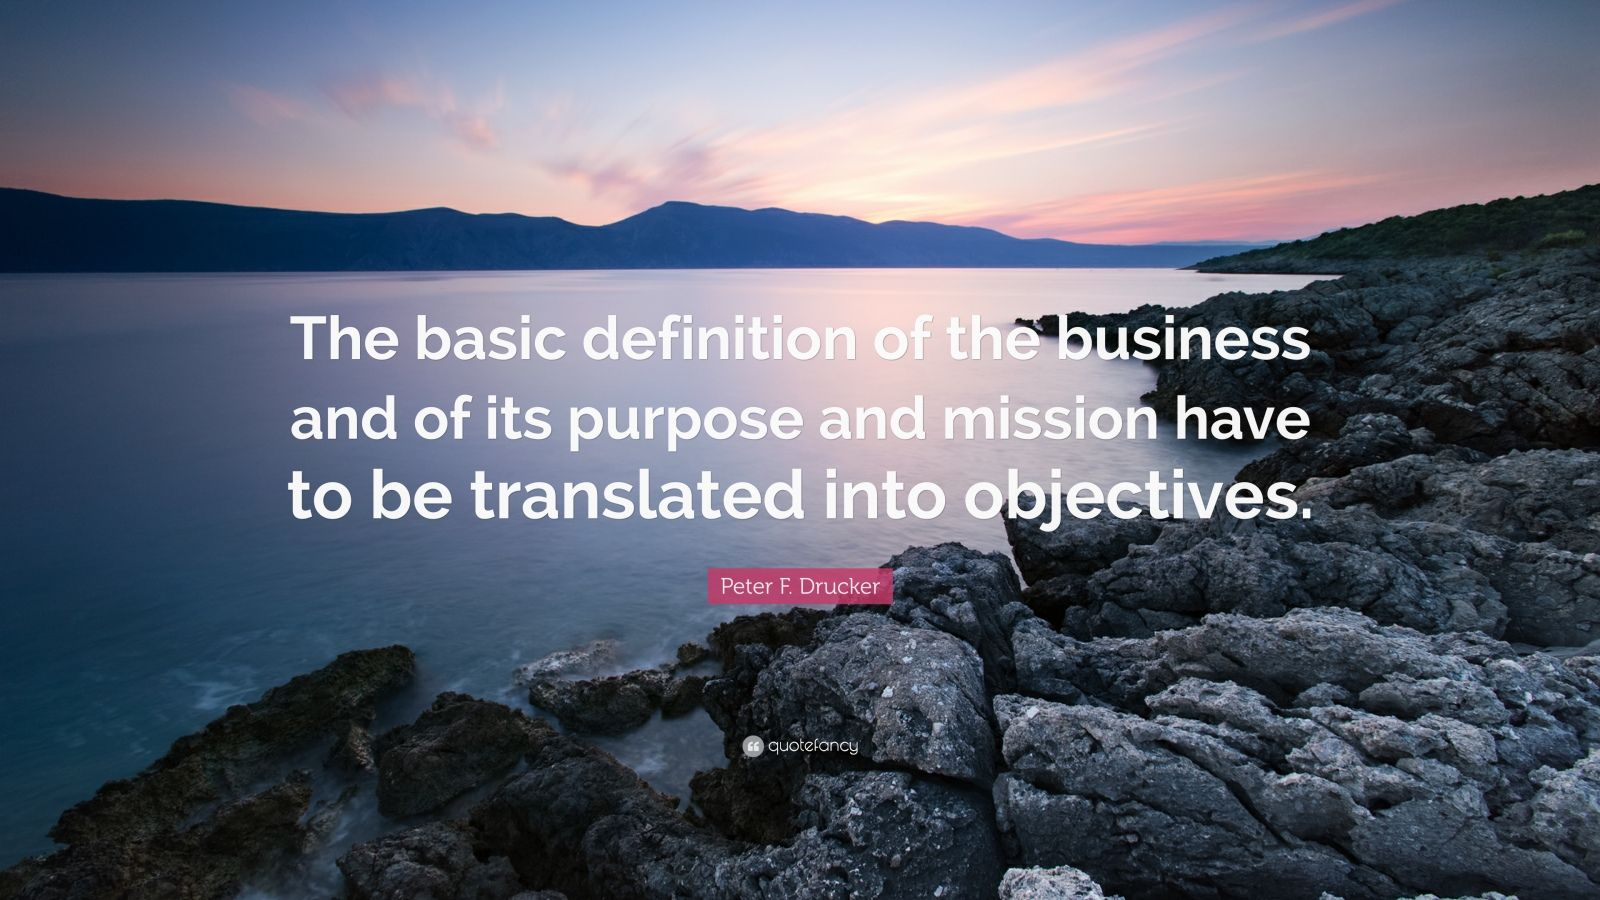 """Peter F. Drucker Quote: """"The basic definition of the business and of its purpose and mission have to be translated into objectives."""""""